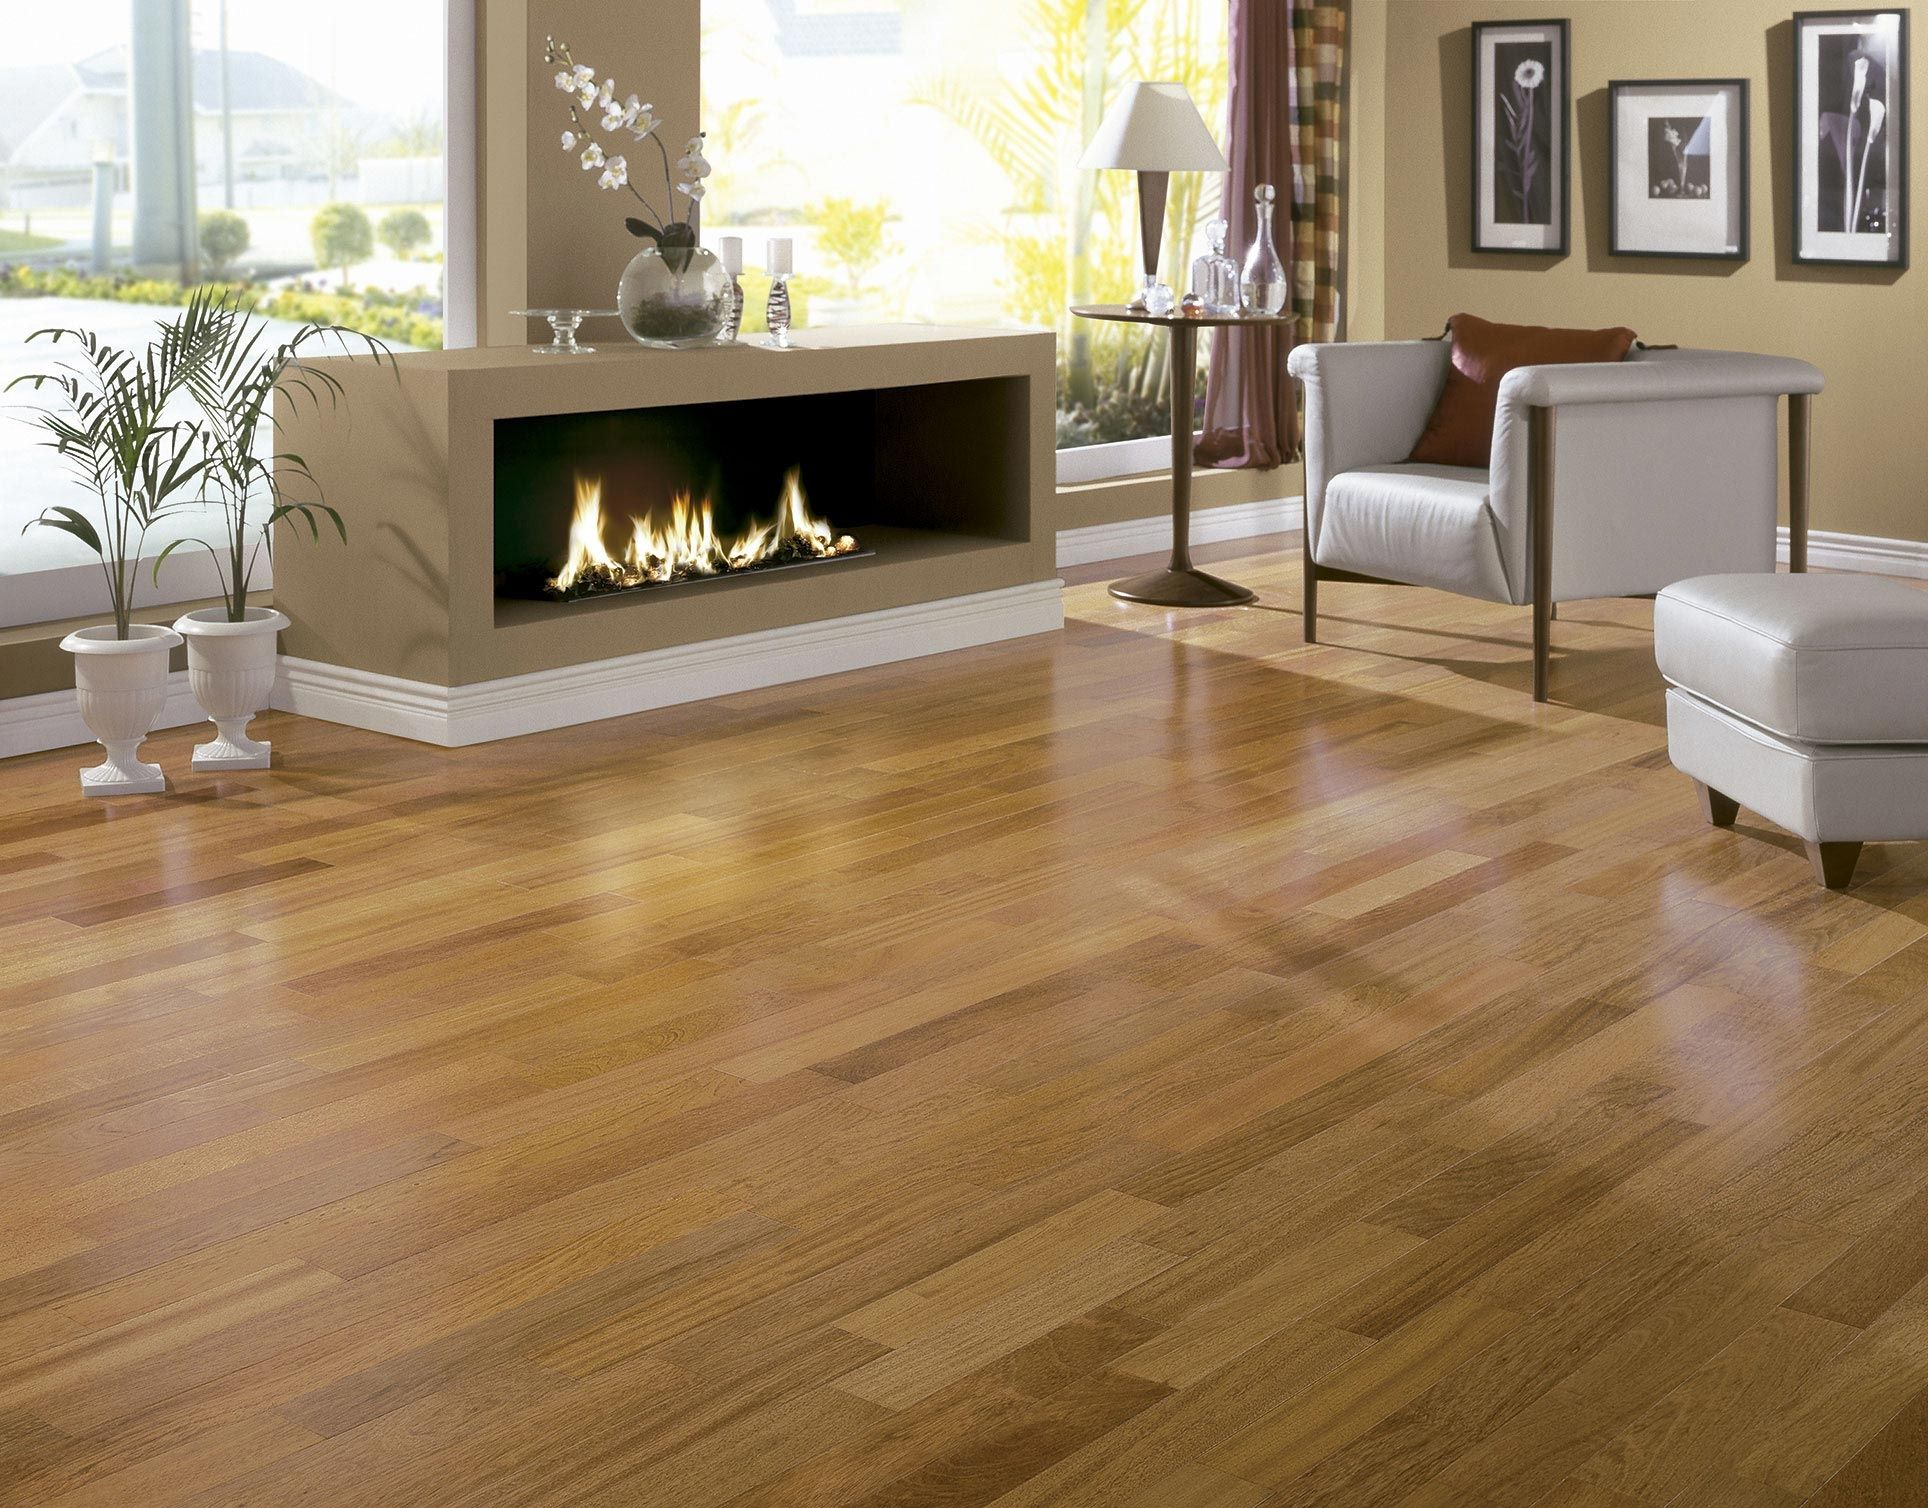 Bj wood flooring hours httpdreamhomesbyrob pinterest harris tarkett engineered hardwood flooring when shopping for do it yourself or pre finished hardwood flooring can you und solutioingenieria Image collections